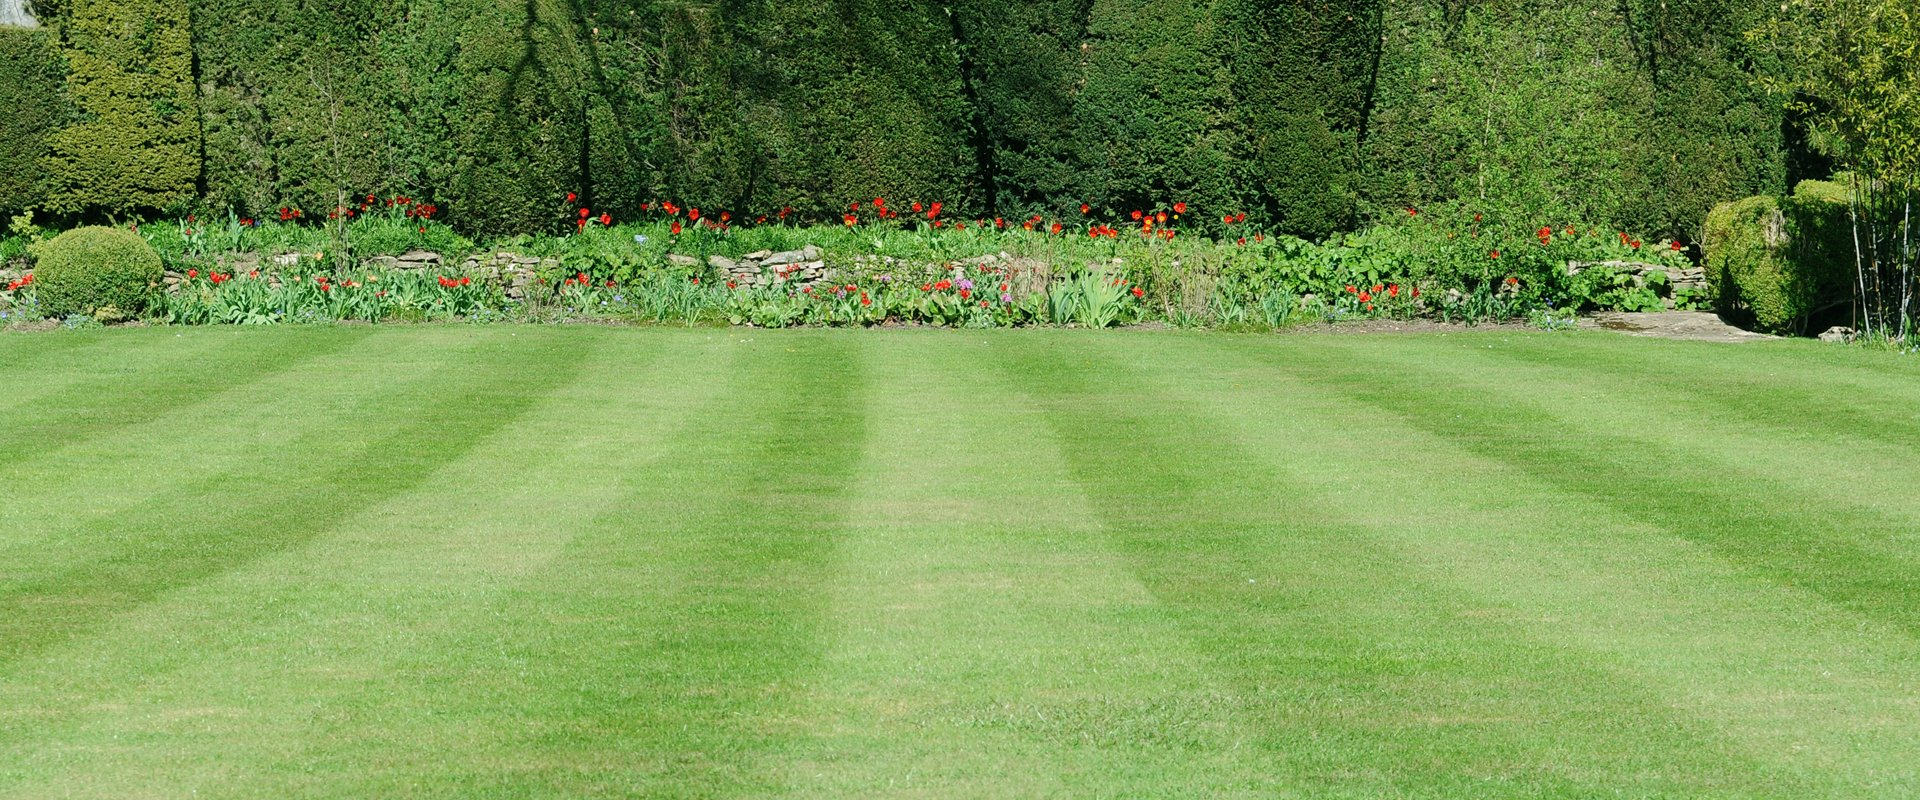 Beds of red flowers at the end of a striped lawn